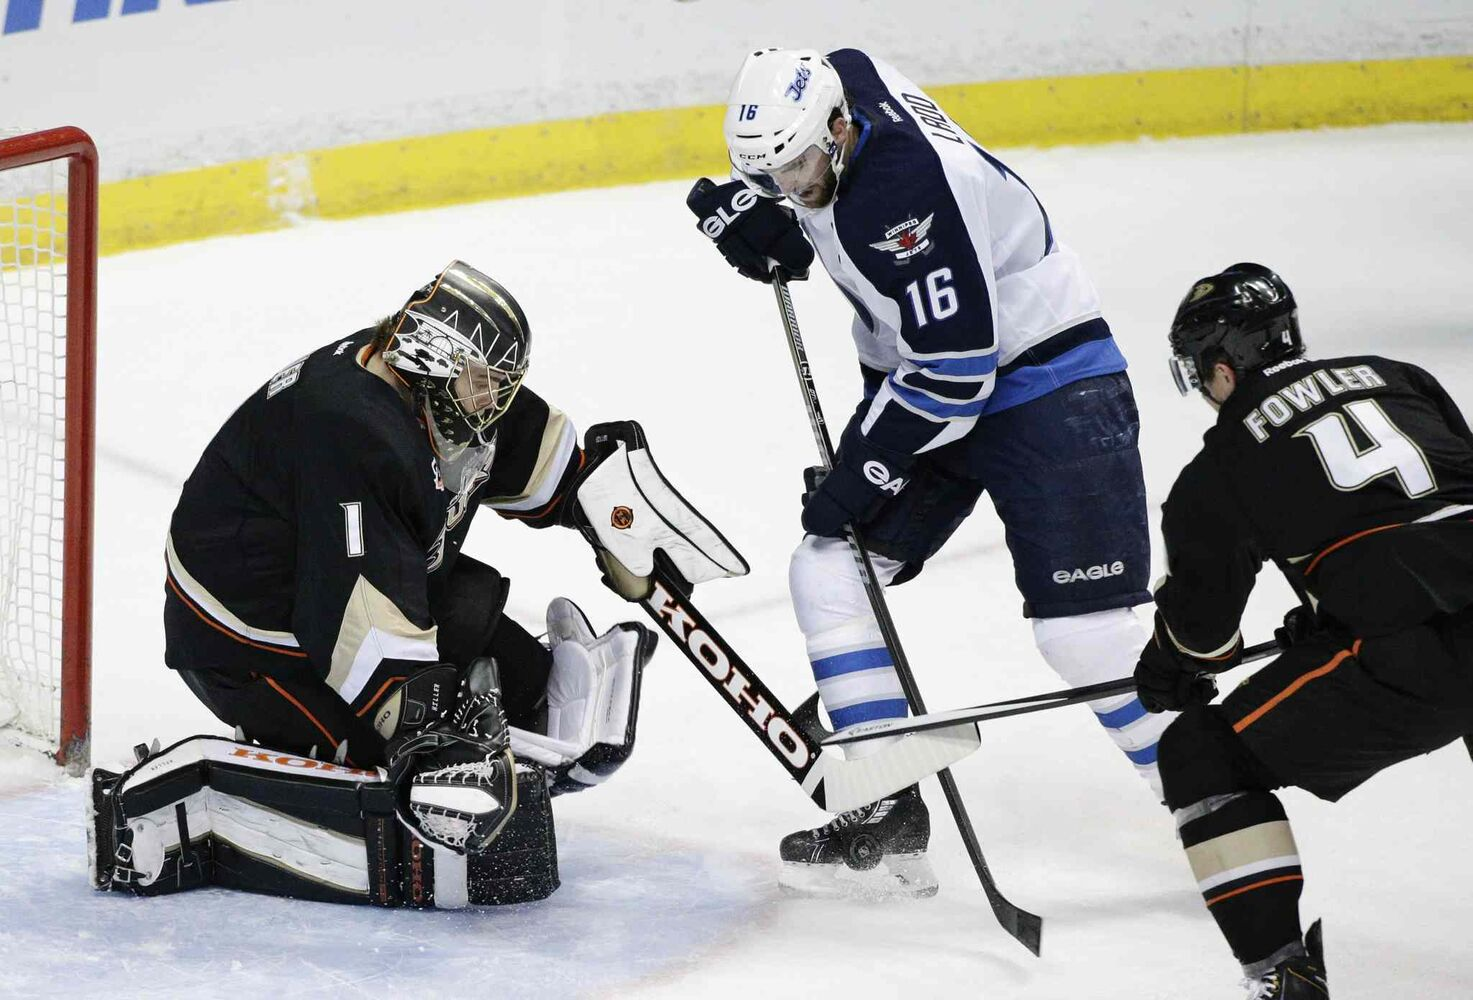 Winnipeg Jets' Andrew Ladd (16) tries to score against Anaheim Ducks' goalie Jonas Hiller, left, as the Ducks' Cam Fowler defends during first period in Anaheim Tuesday. (Jae C. Hong / The Associated Press)